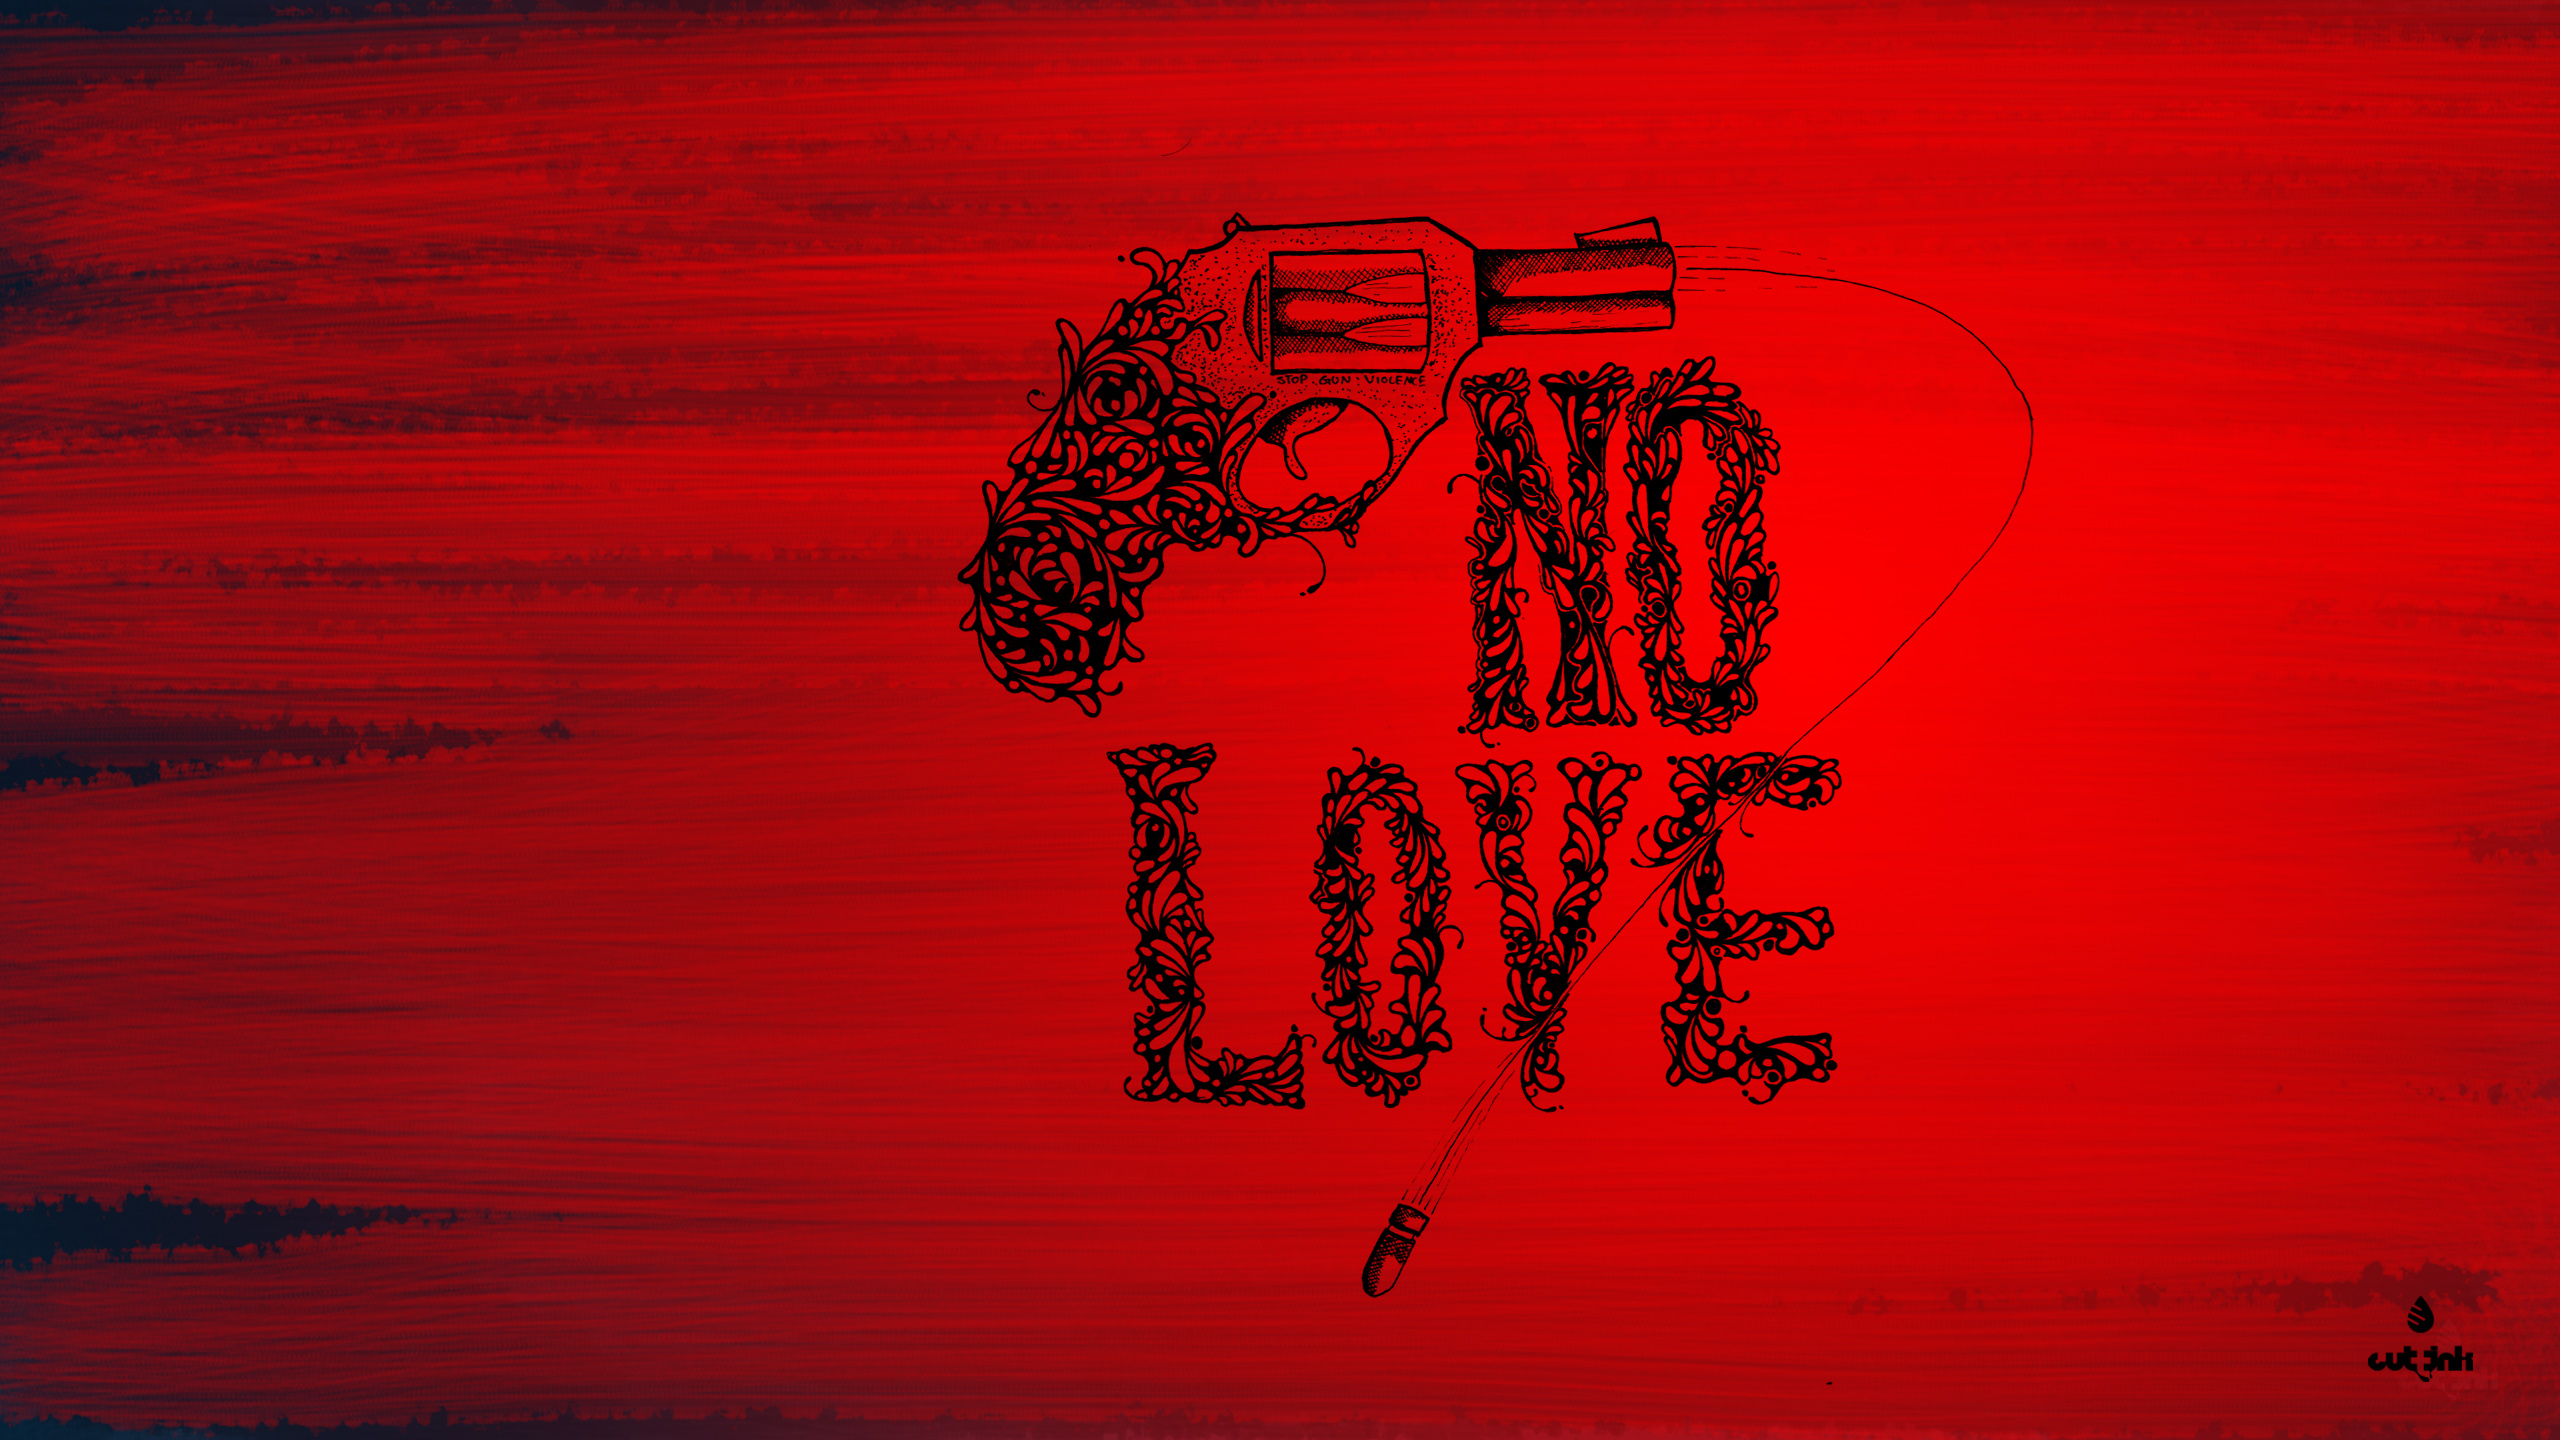 No Love Wallpaper: August Alsina No Love Quotes. QuotesGram